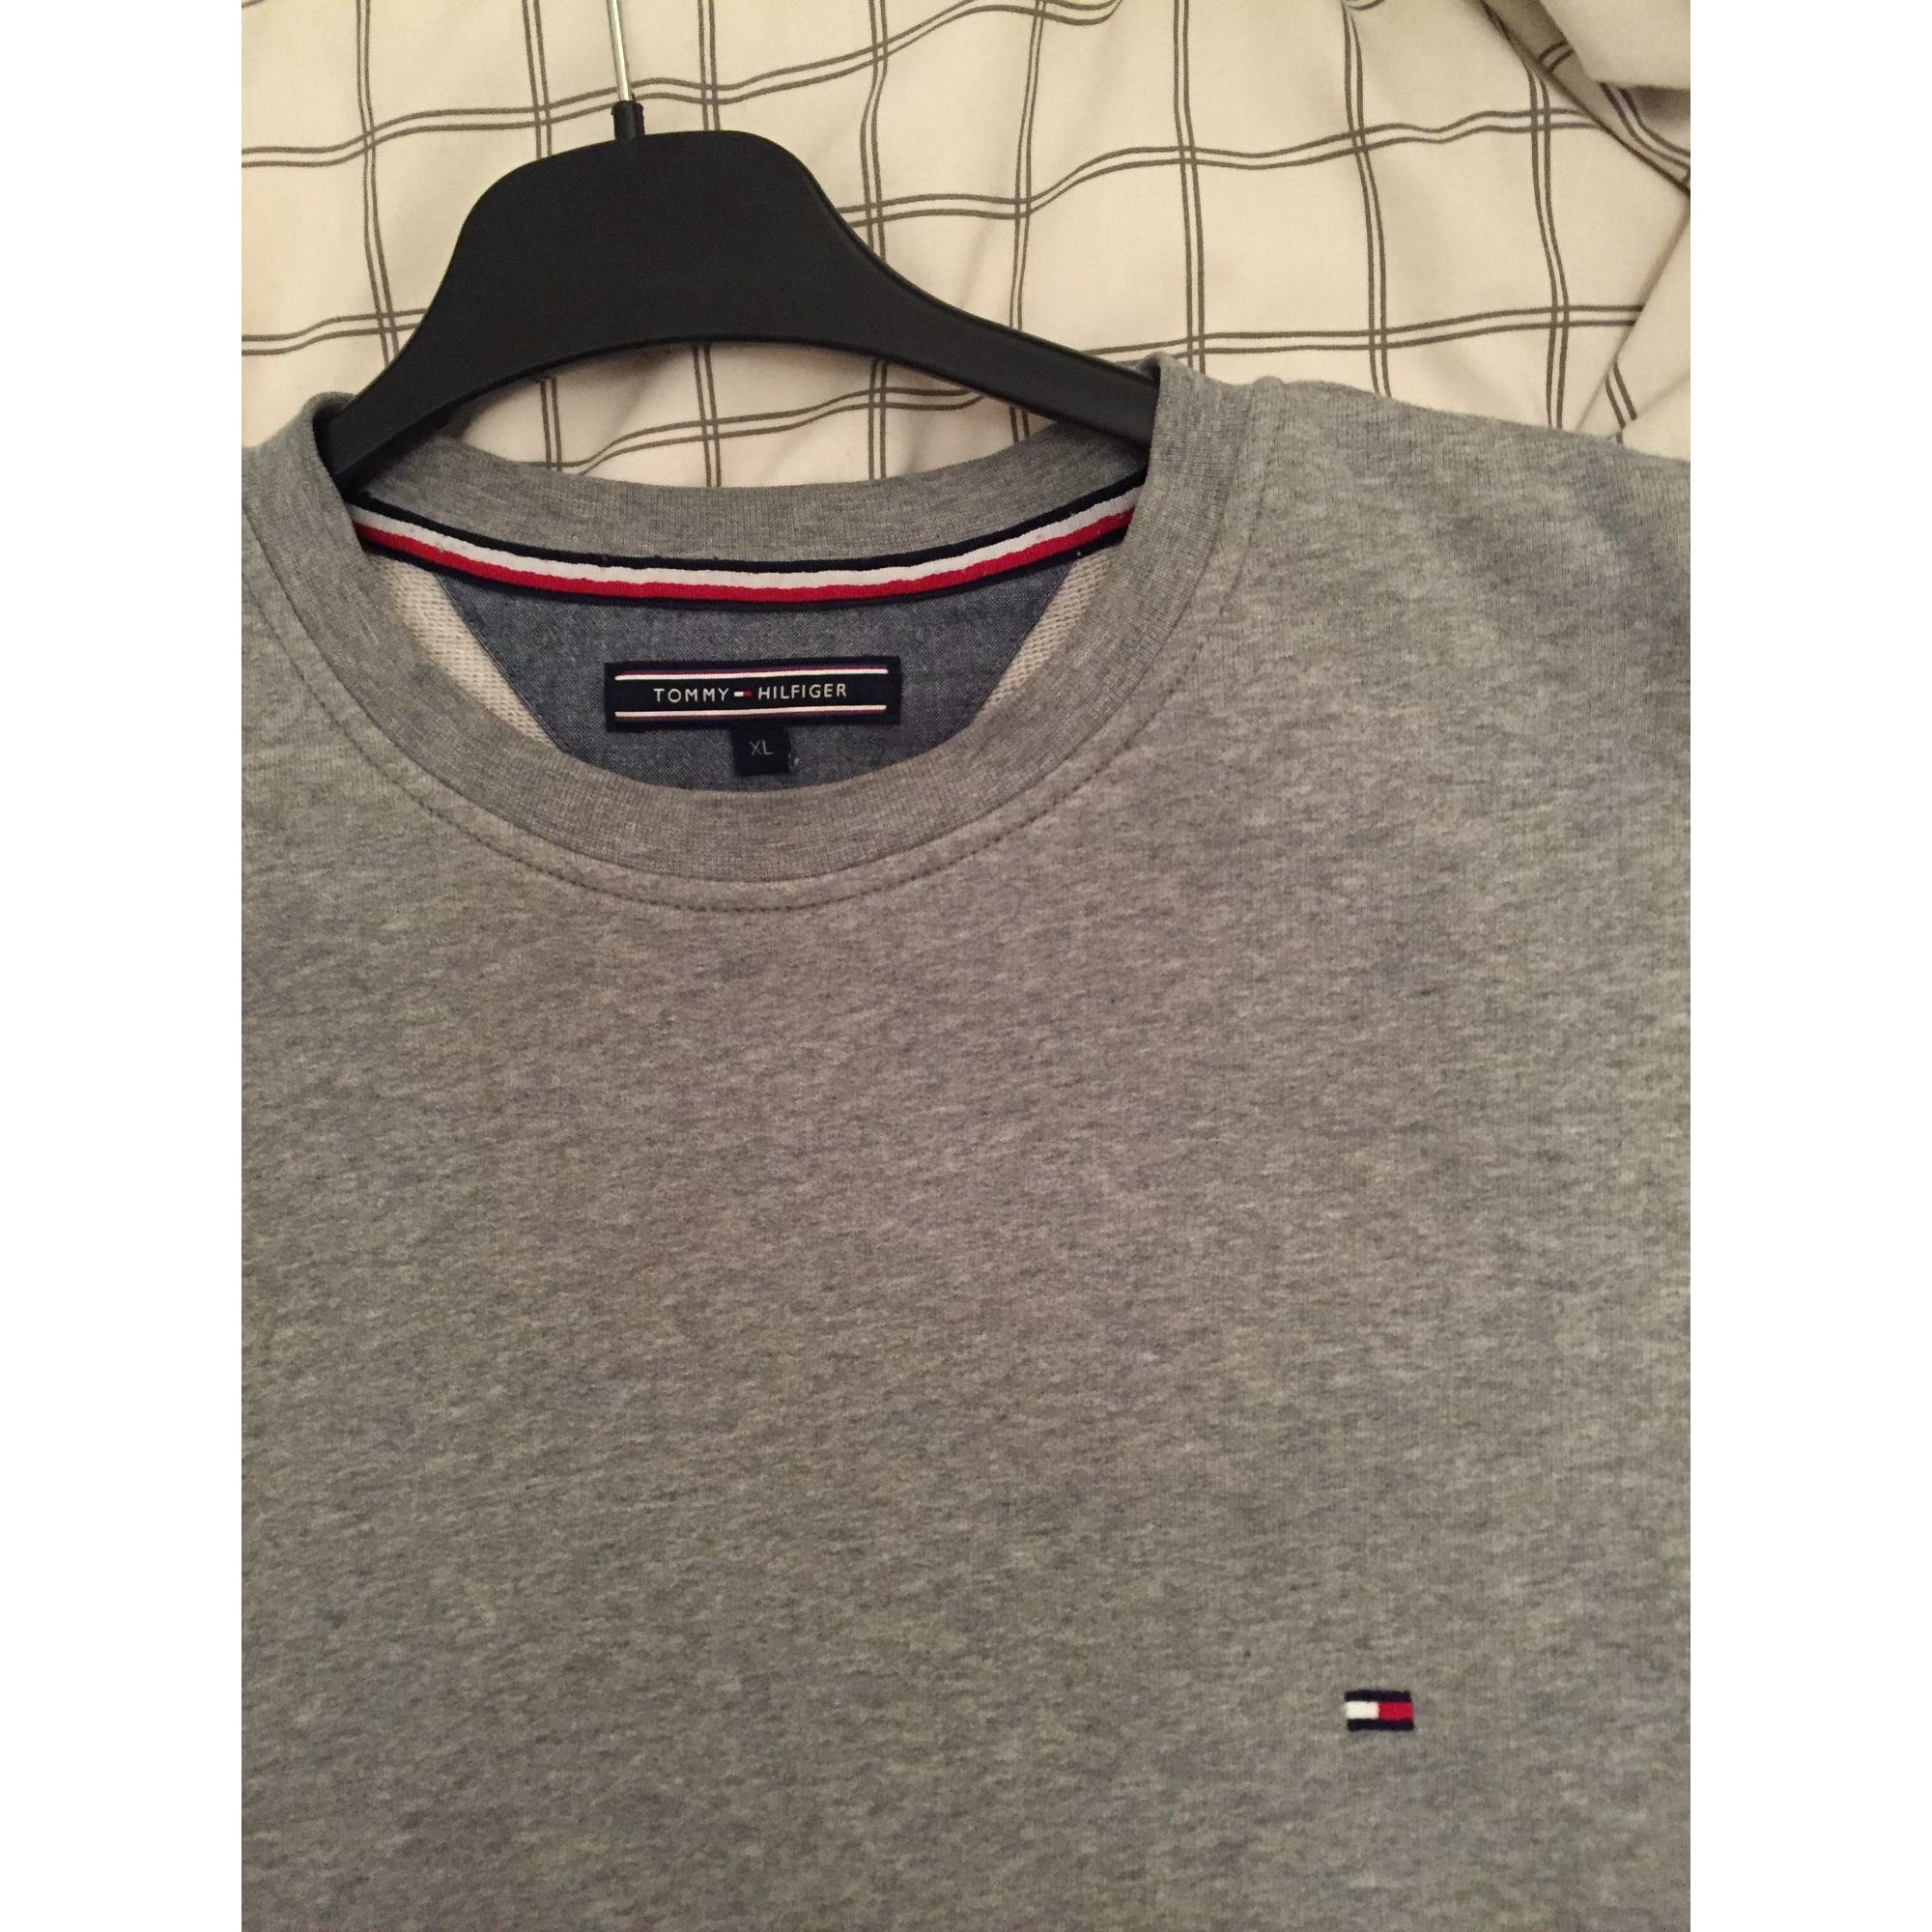 Pull TOMMY HILFIGER Gris, anthracite